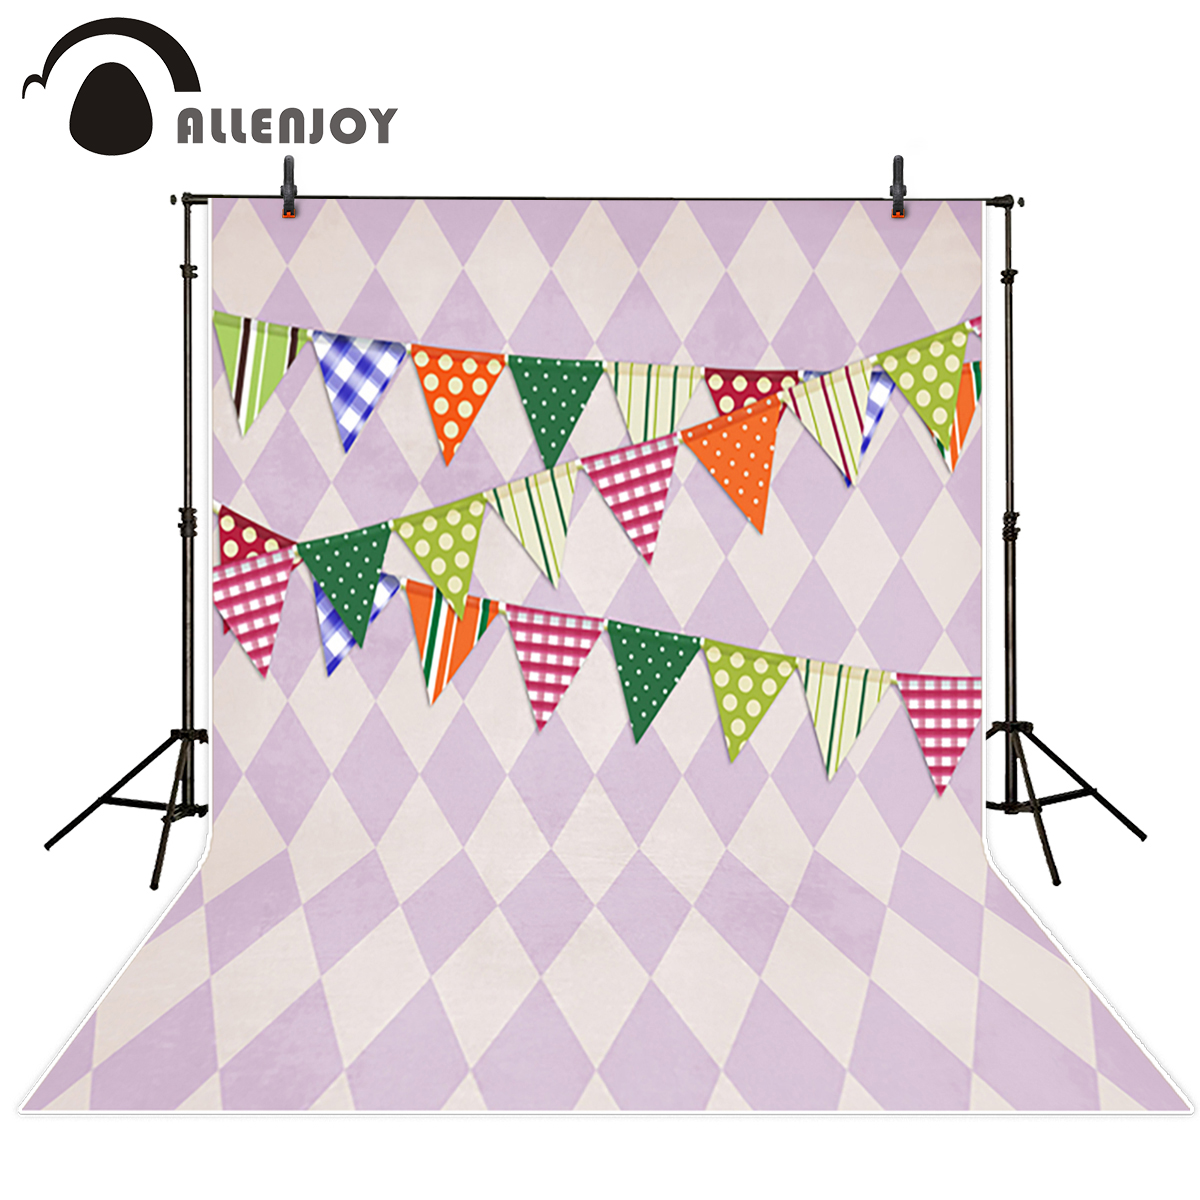 Allenjoy photography background colorful flags purple lattice kids customize for photo studio vinyl cloth photocall allenjoy photographic background castle butterfly purple stars newborn photography photo for studio send rolled wood